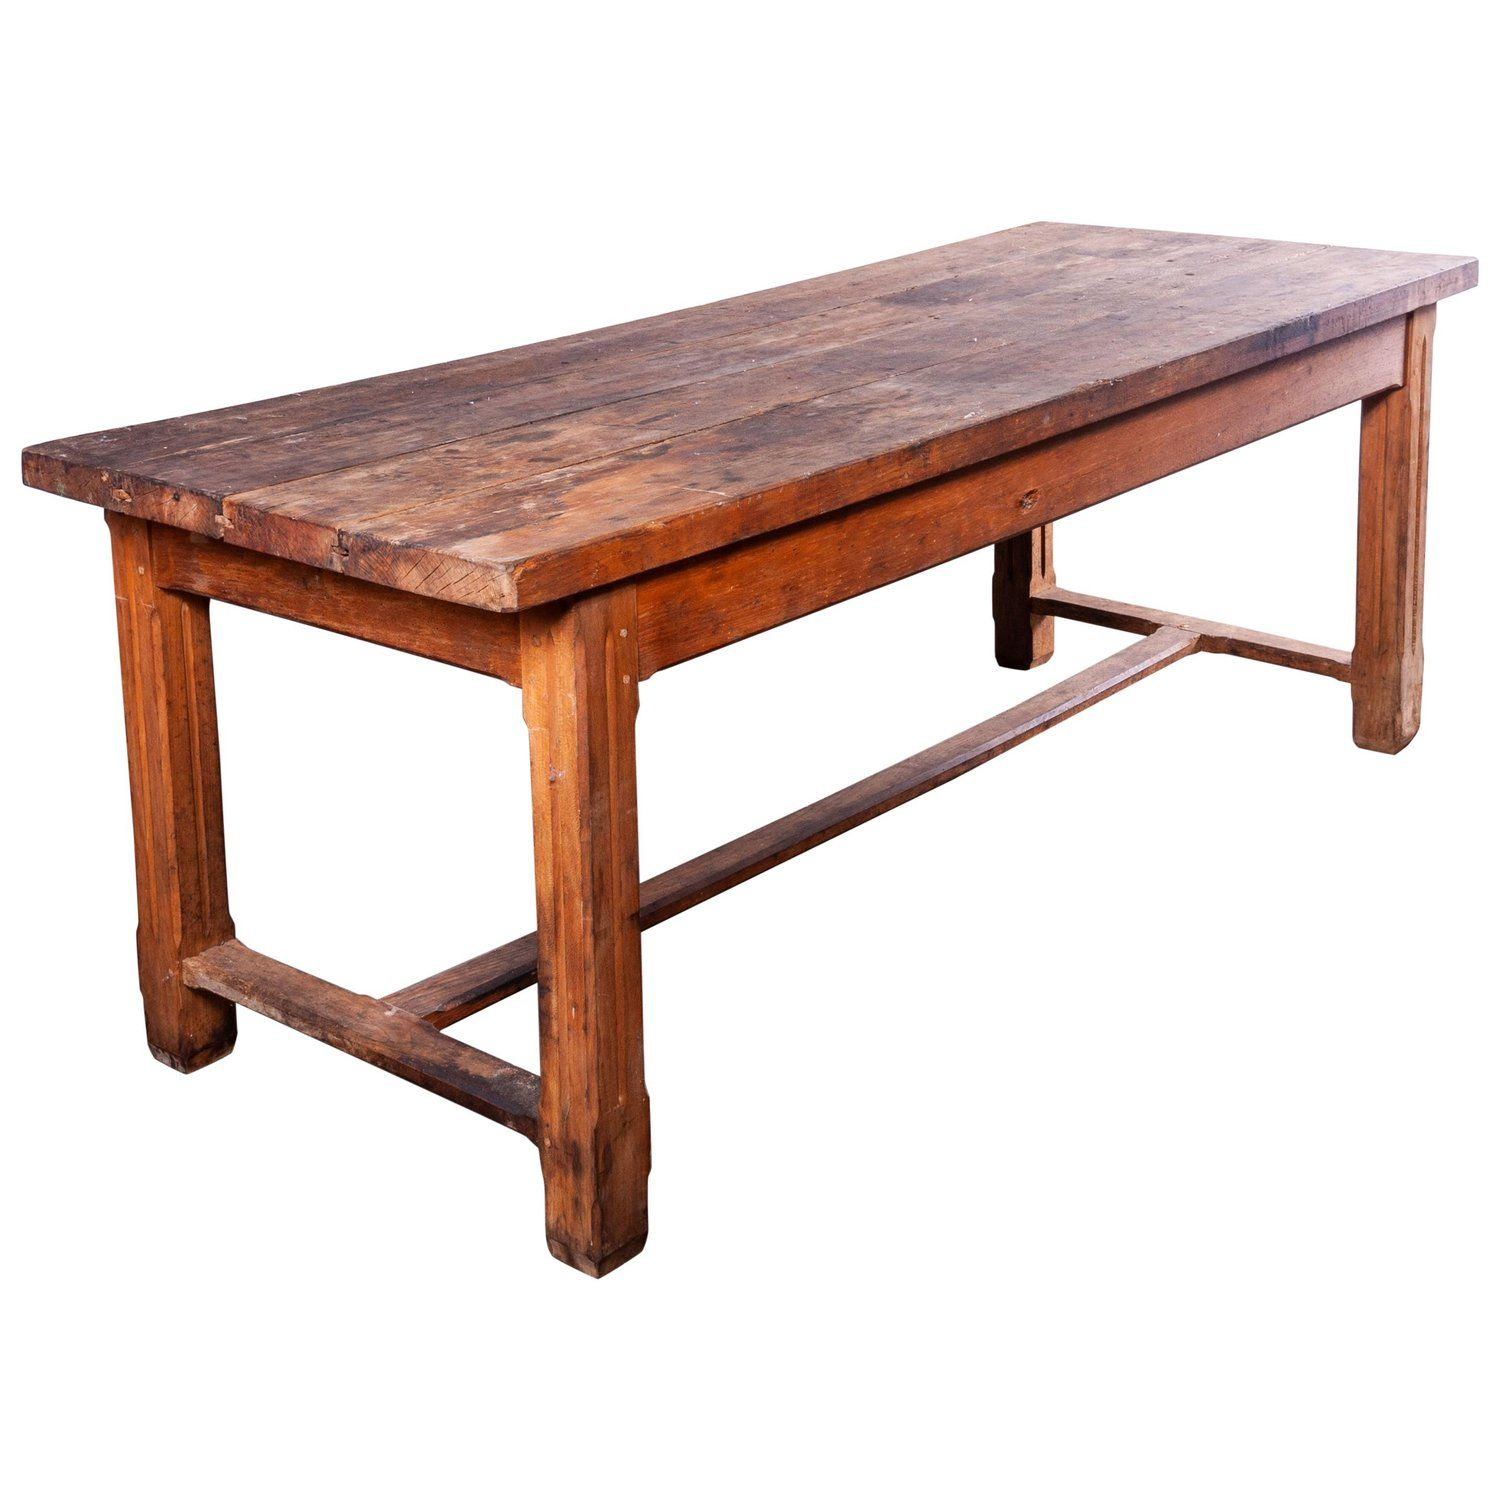 1940s French Farmhouse Rectangular Dining Table In Solid Beech Wood Rectangular Dining Table Dining Table French Farmhouse Dining Table